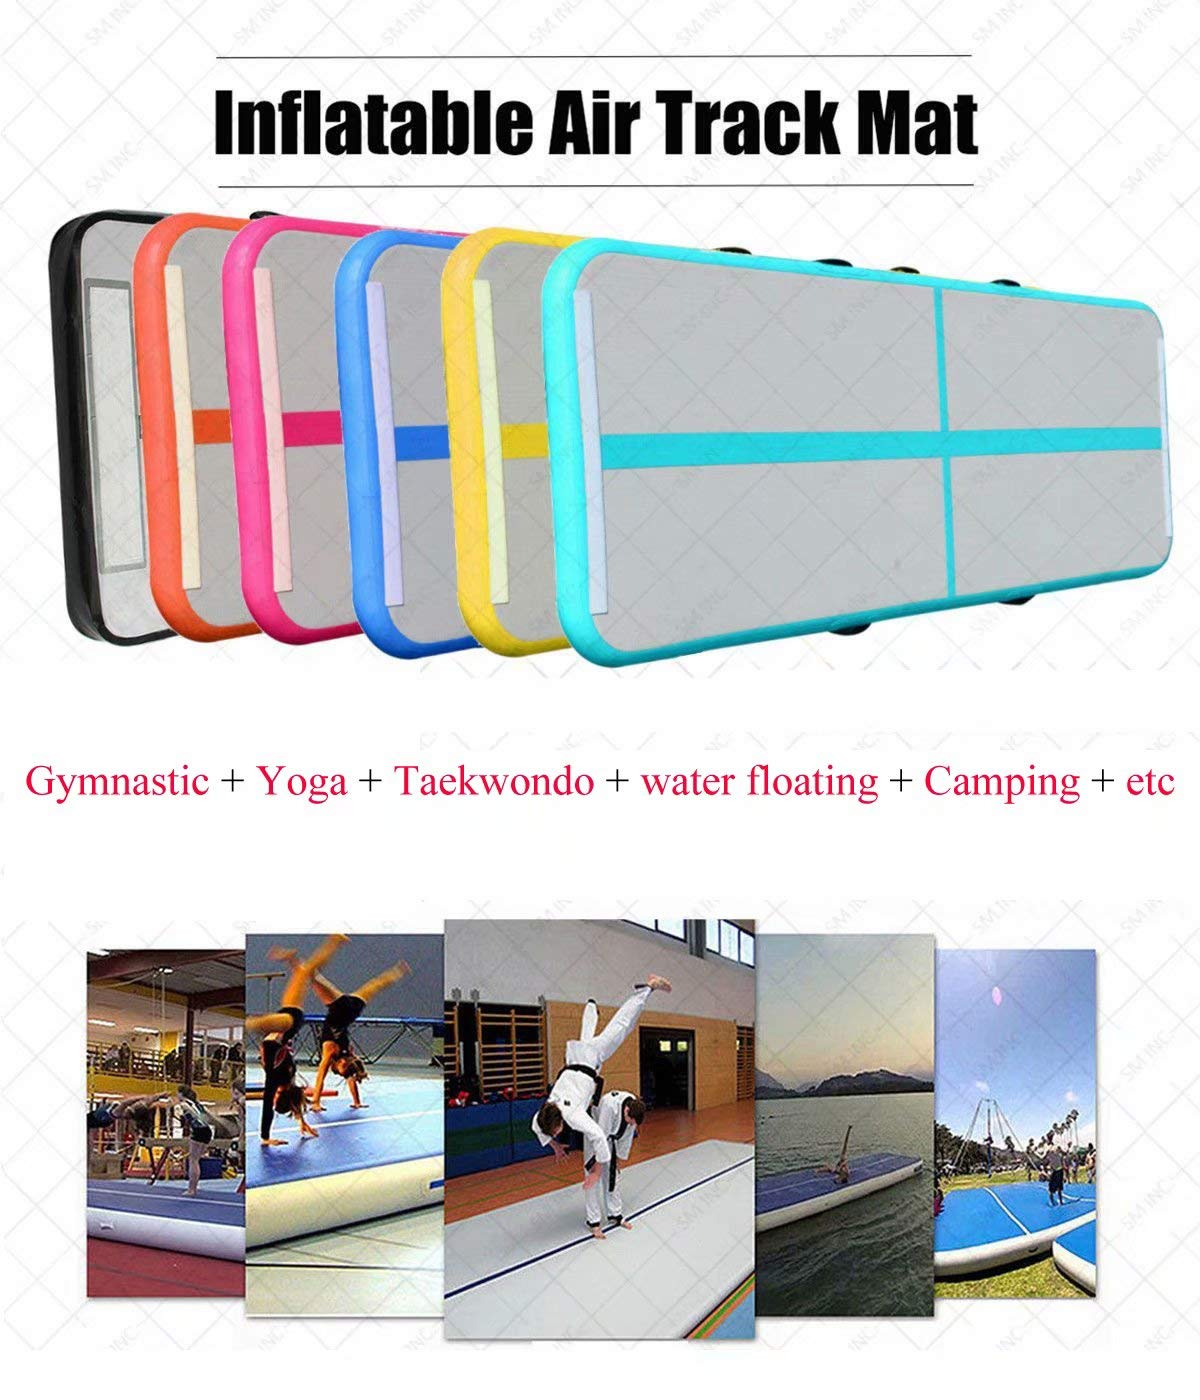 Cotogo 2.95 ft //3.28 feet Wide Air Track Connector Tape Gray for Inflatable Airtrack Tumbling Gymnastic Gray, 3.28ft//1M wide Yoga Taekwondo //Camping Training mat